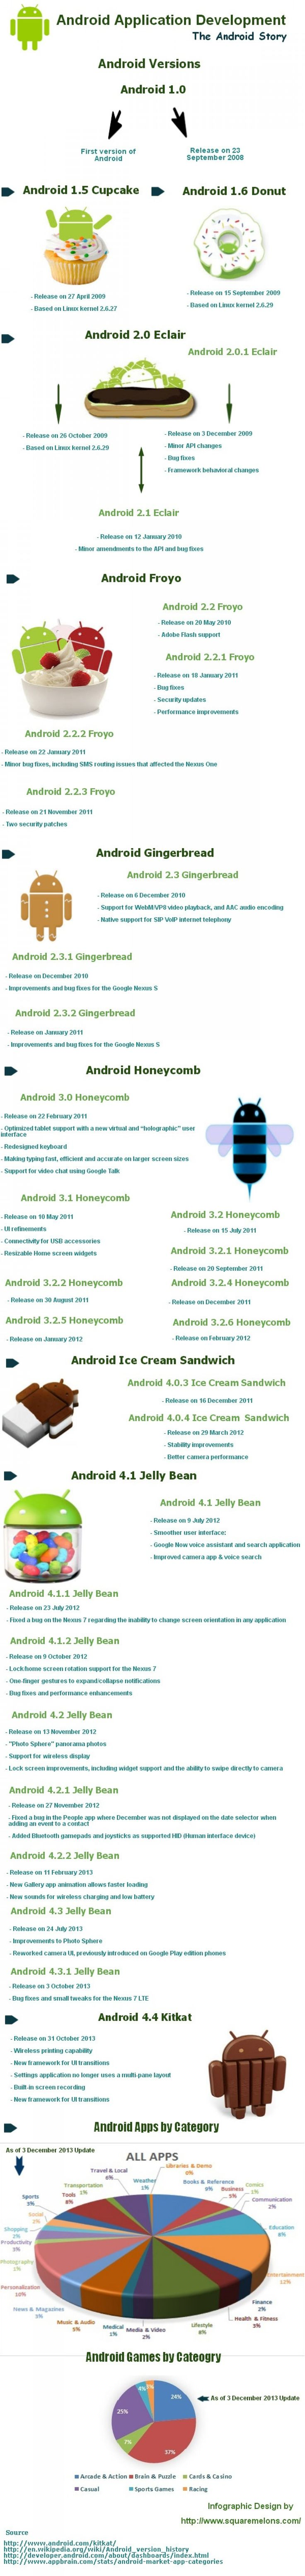 Android #Application #Development | #Android Versions #Infographic